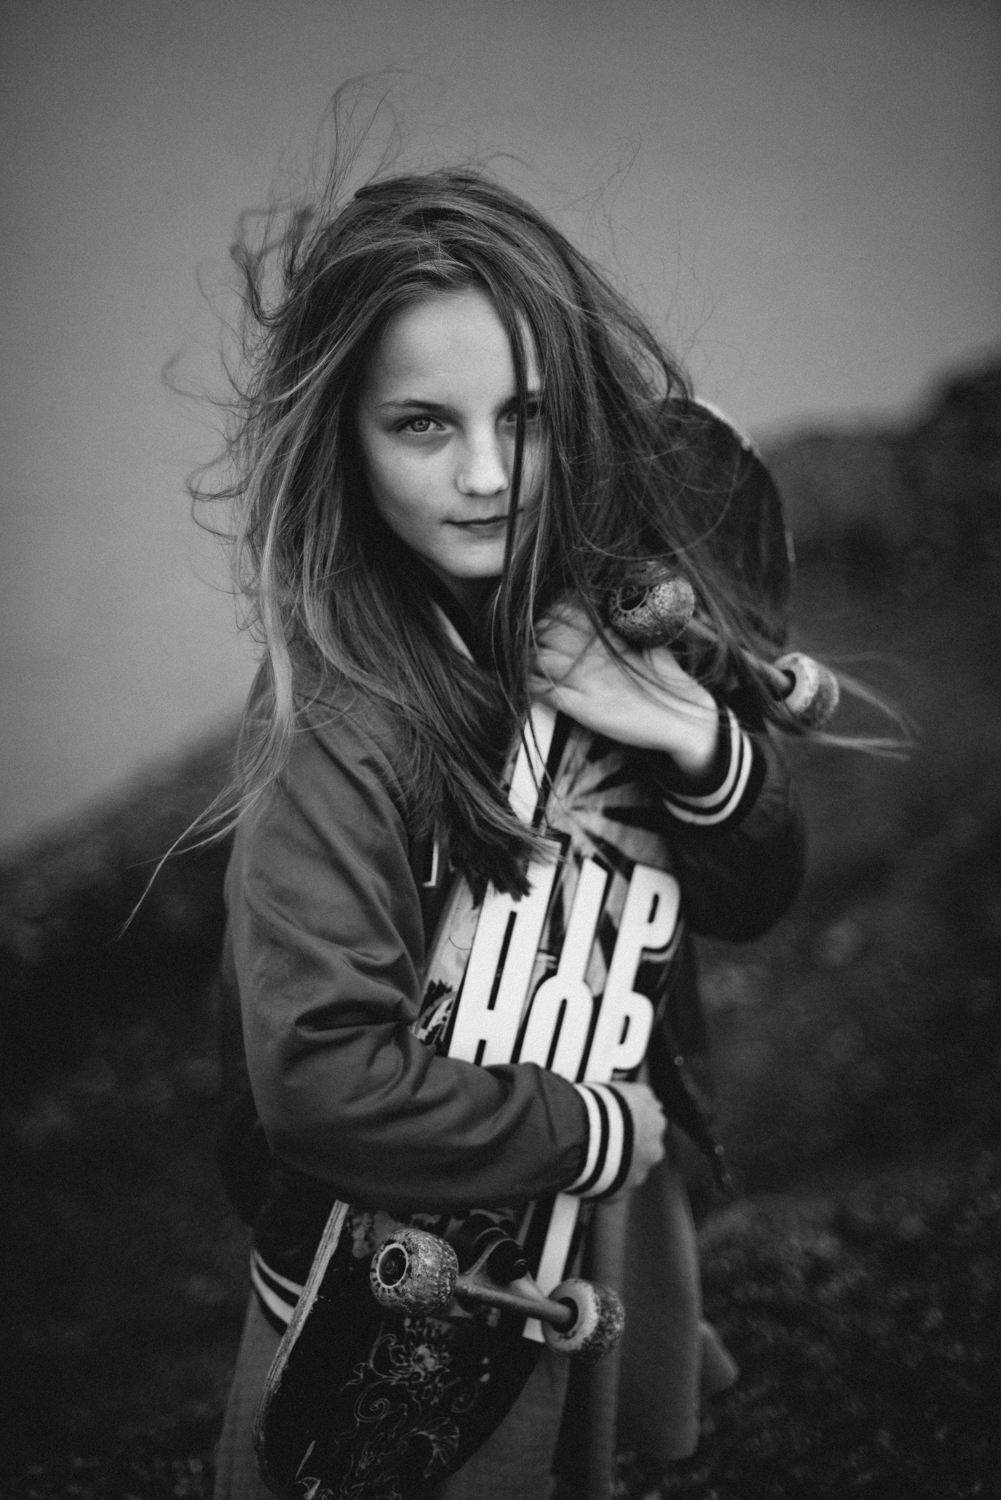 03_skate_skater_girl_child_wind_windy_lake_clonmel_tipperary_ireland_water_skateboard_hiphop_creative_photoshoot_artistic_natural_family_photography_photographer_berit_alits_nikon_d800_50_mm_light_clouds_cloudy_long_hair